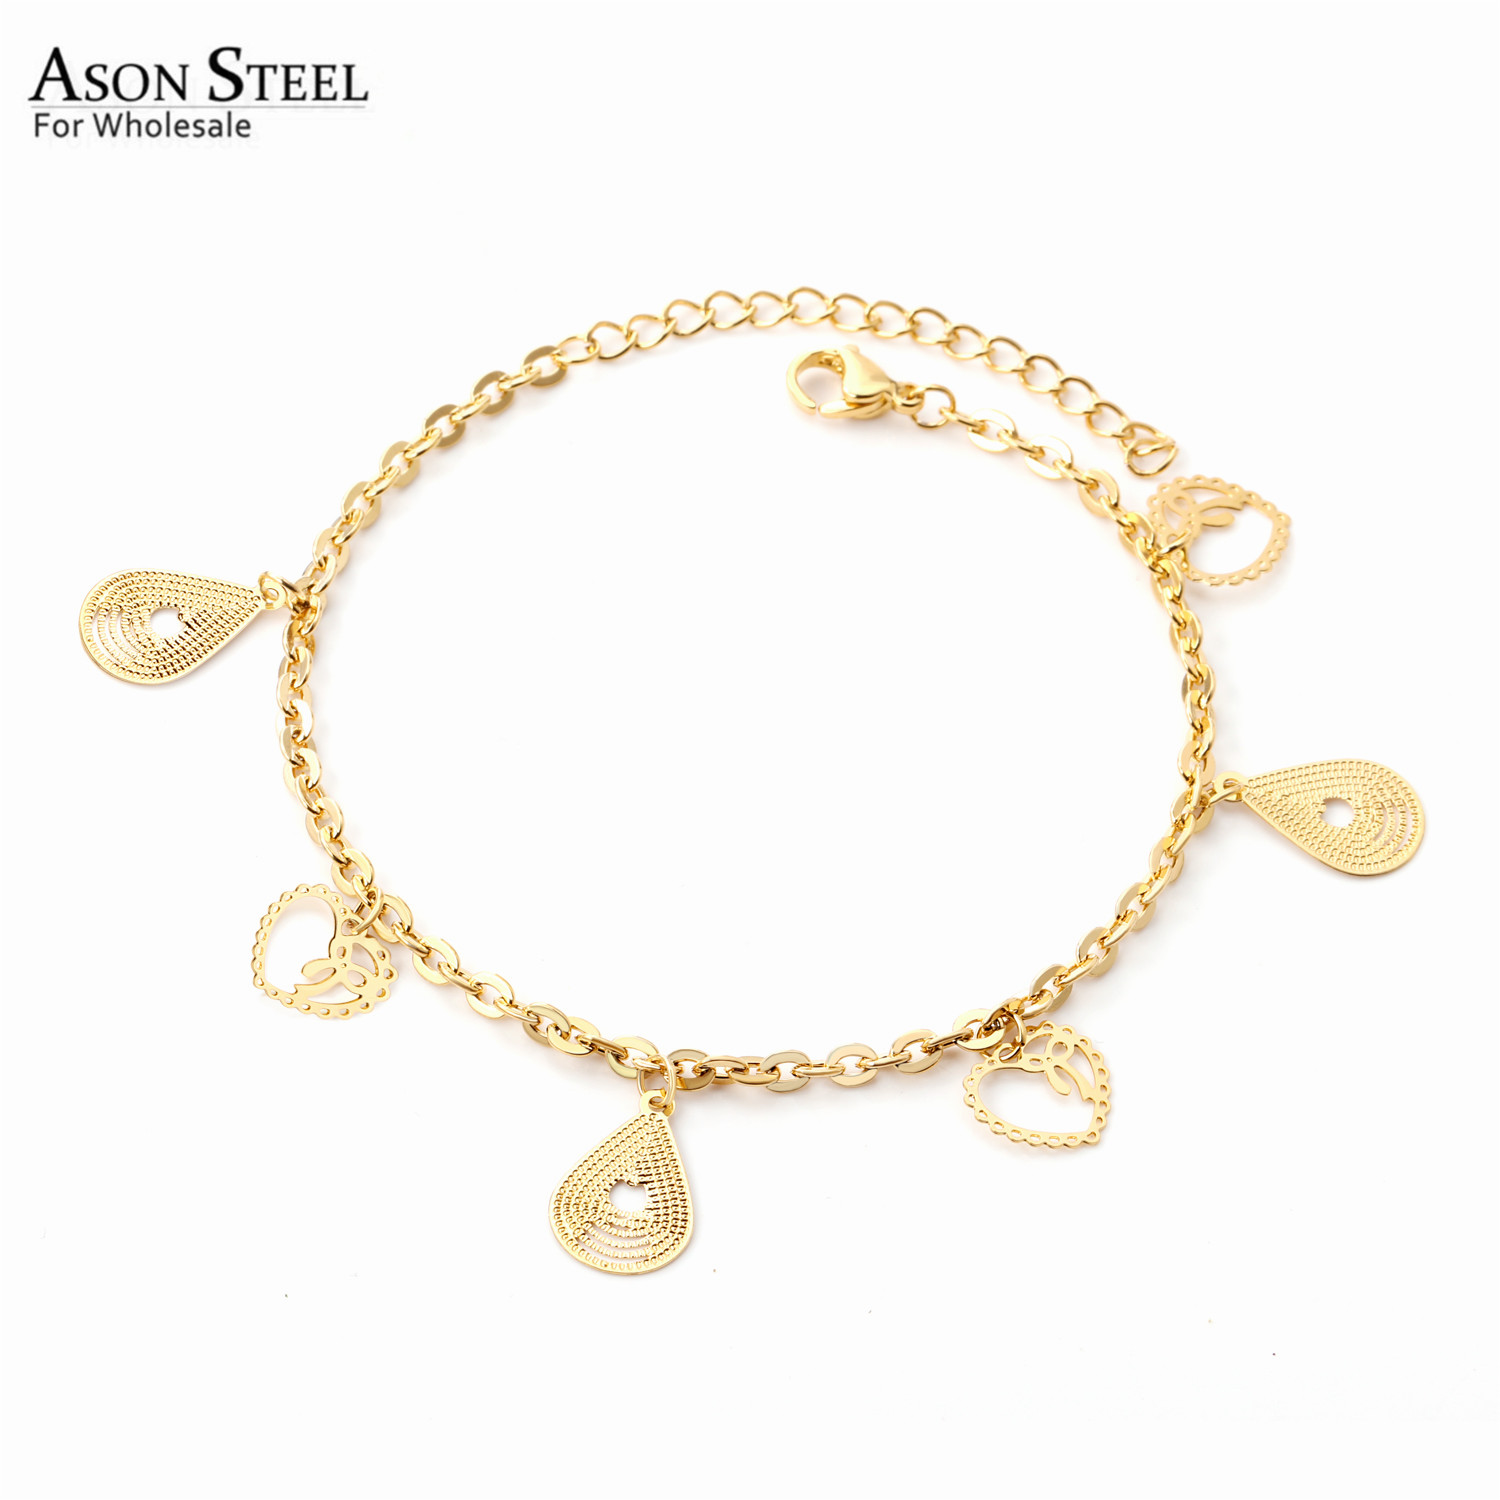 ASONSTEEL 316L Stainless Steel Barefoot Chain Vintage Gold Color Anklet for Women Gift Barefoot Chain Accessories Jewelry